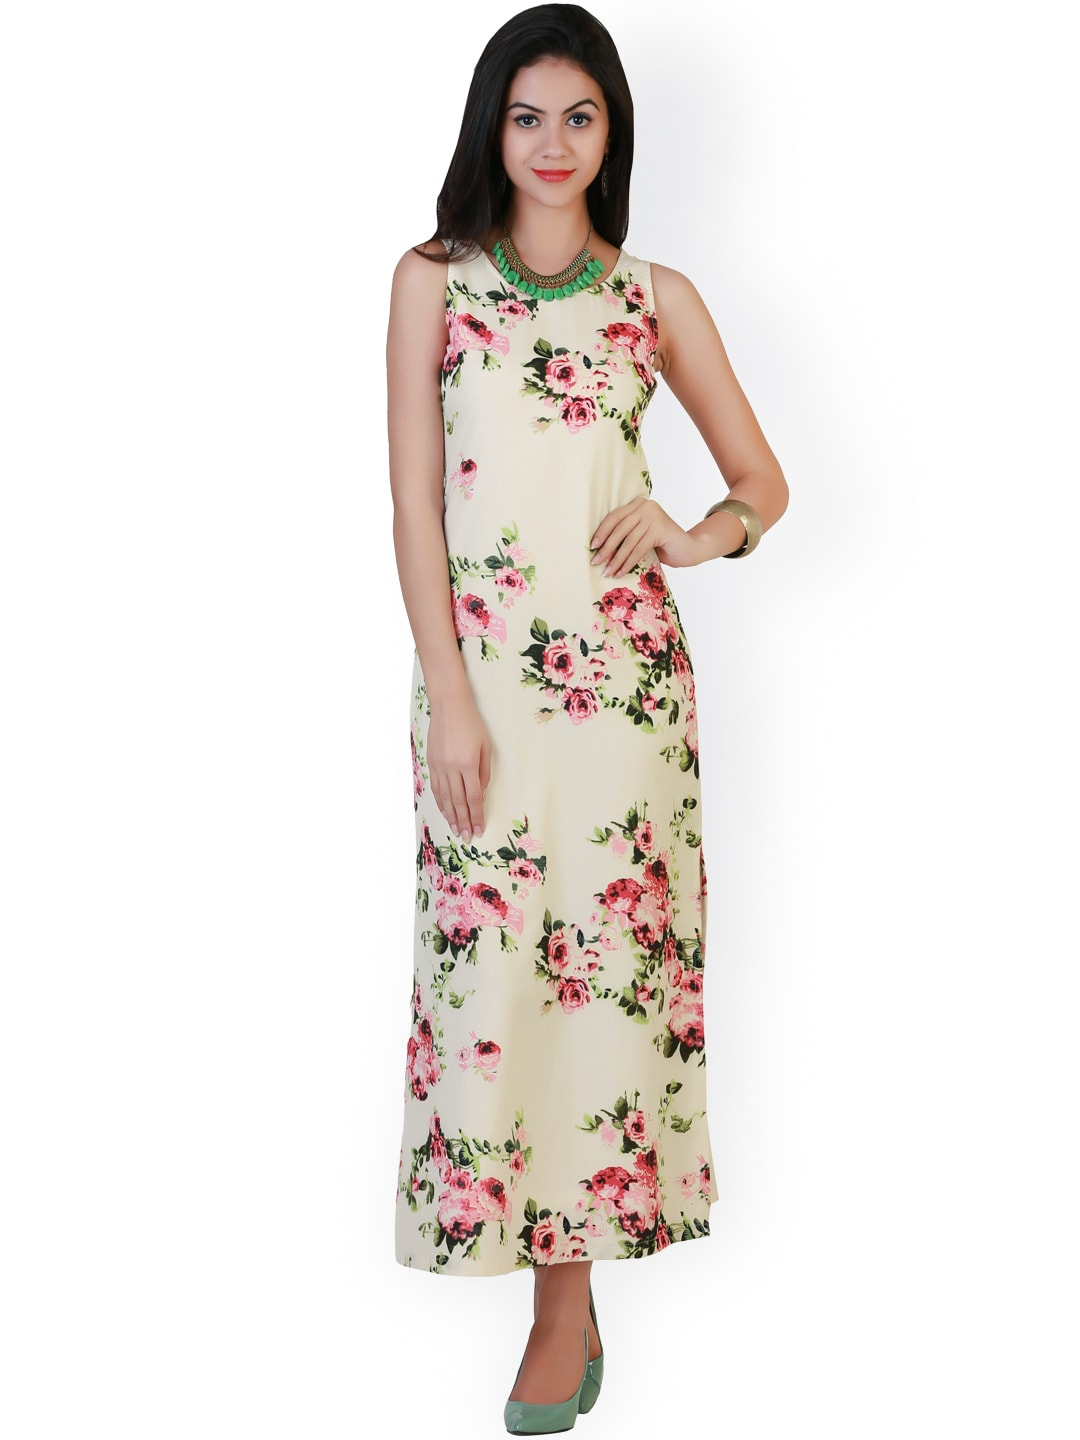 adfddbc30c8 Buy Belle Fille Cream Coloured   Blue Polyester Georgette Maxi Dress ...